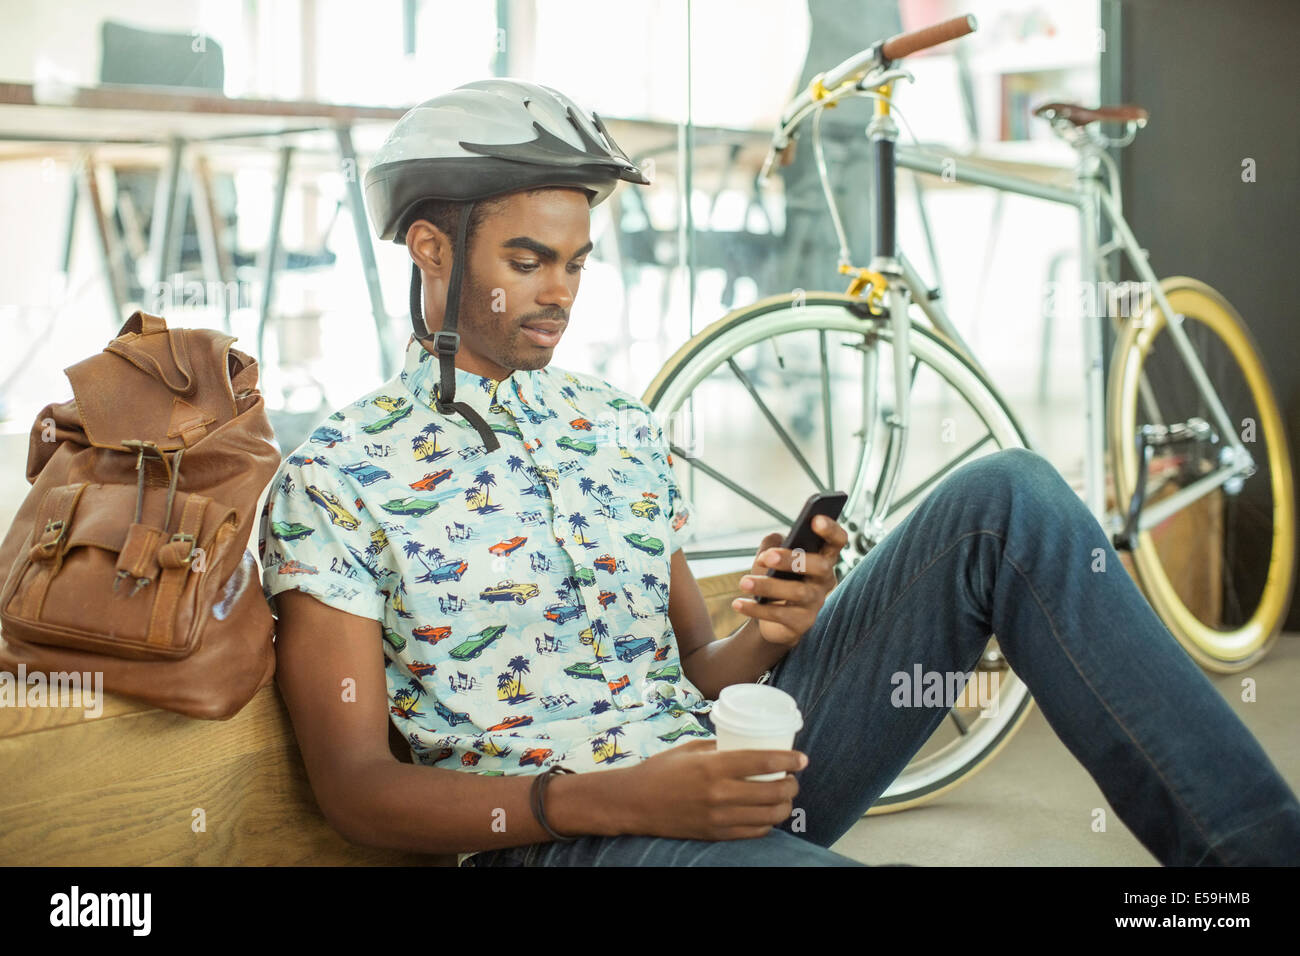 Man in bicycle helmet using cell phone in office - Stock Image